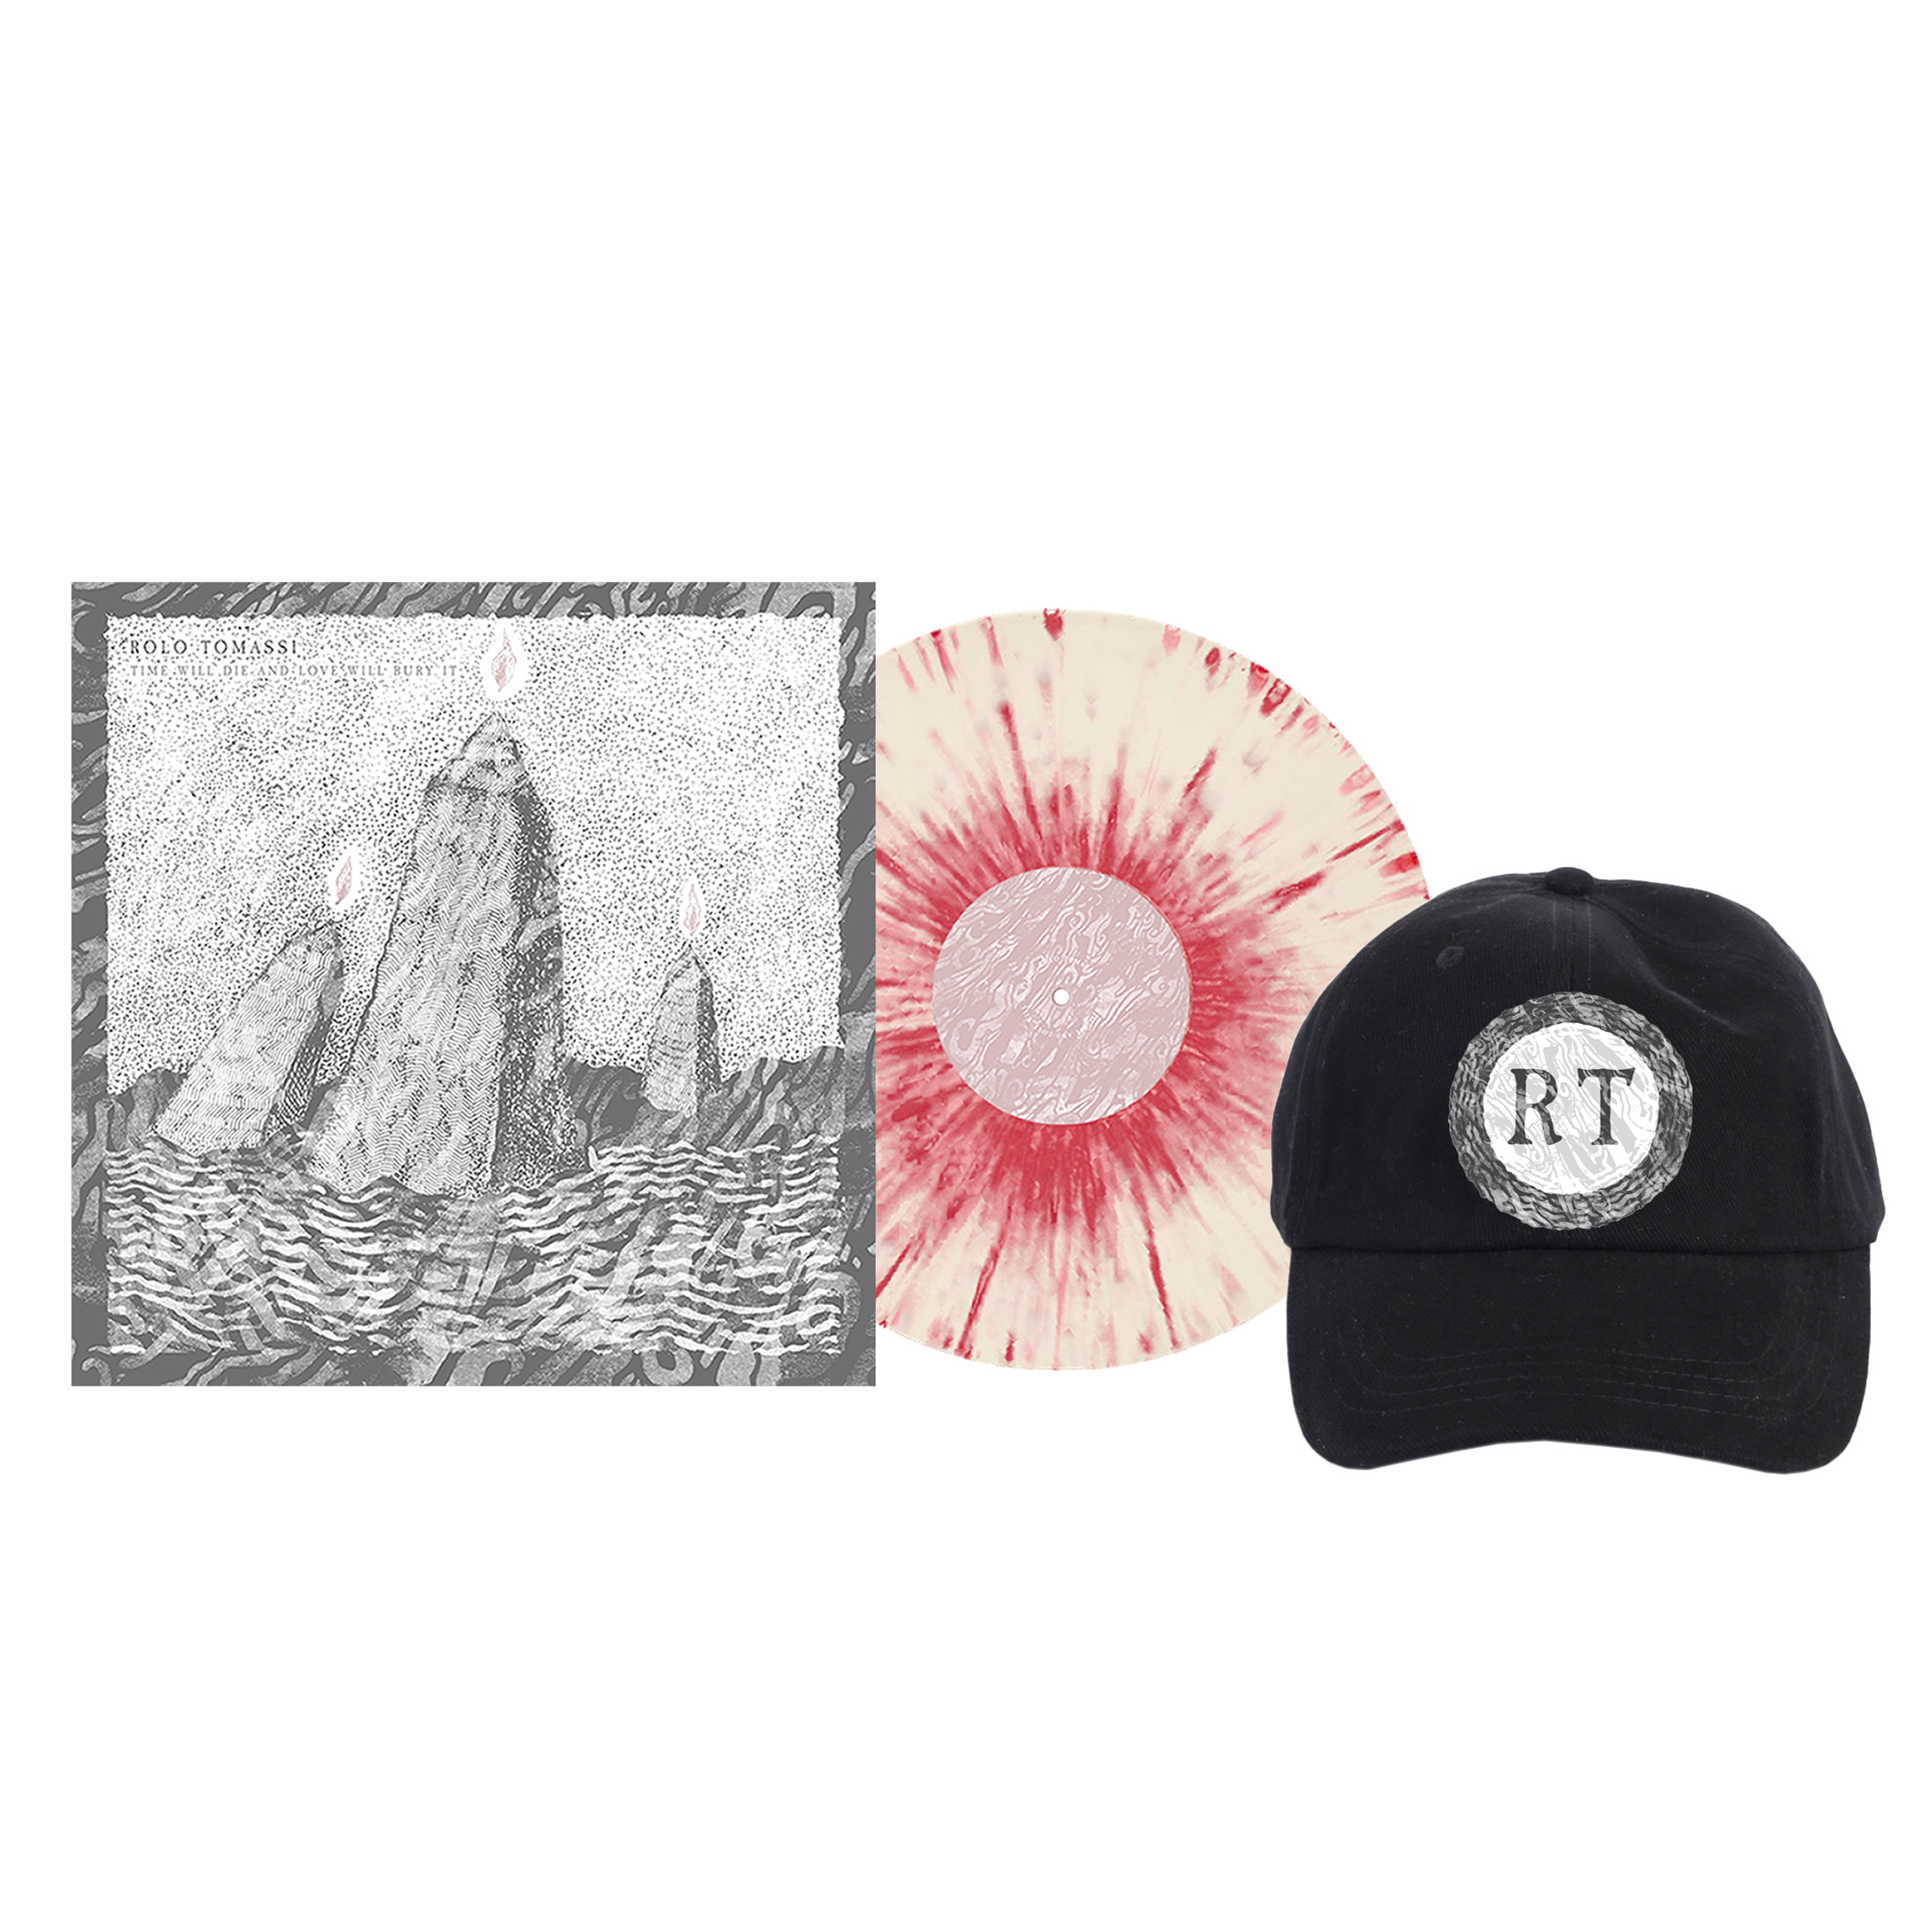 Rolo Tomassi - '...Love Will Bury It' 2xLP + cap